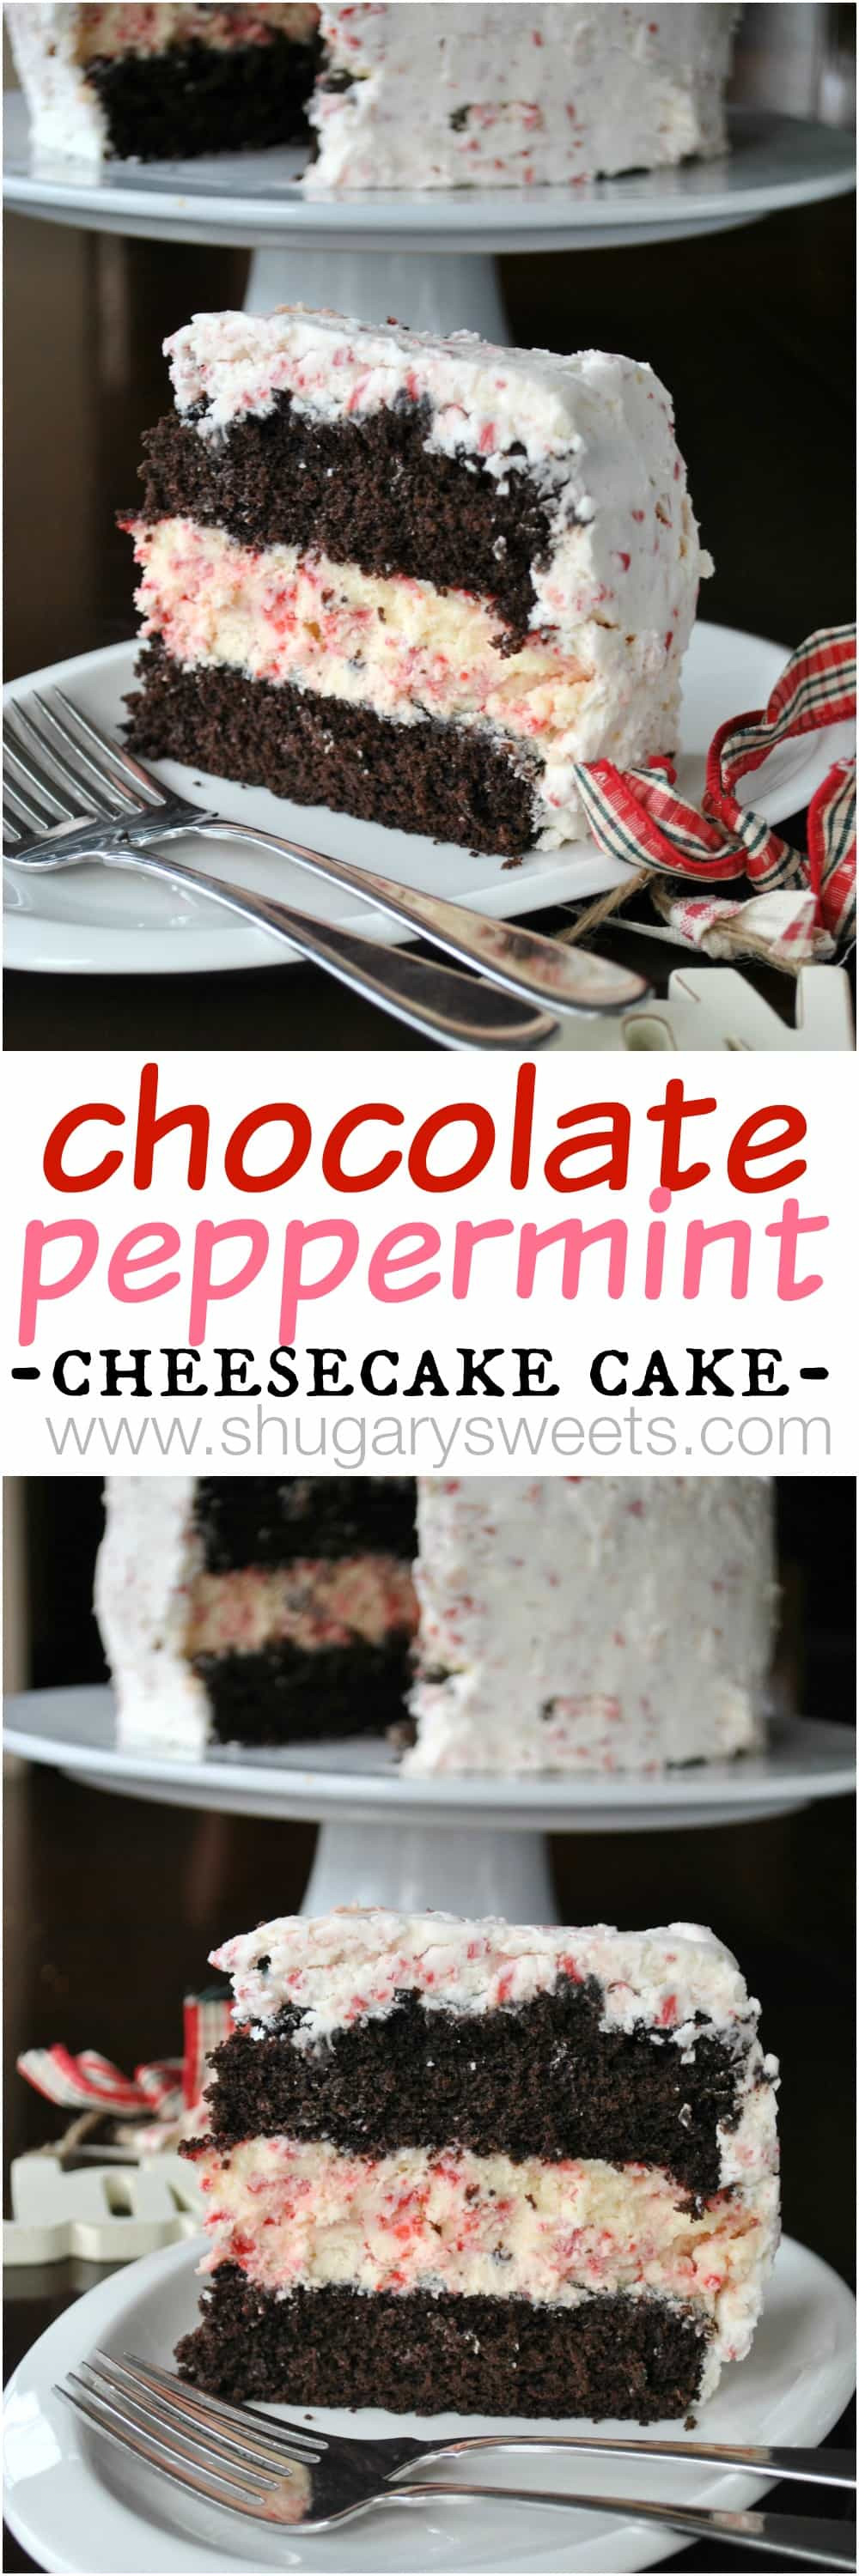 Chocolate Peppermint Cake  Chocolate Peppermint Cheesecake Cake Shugary Sweets